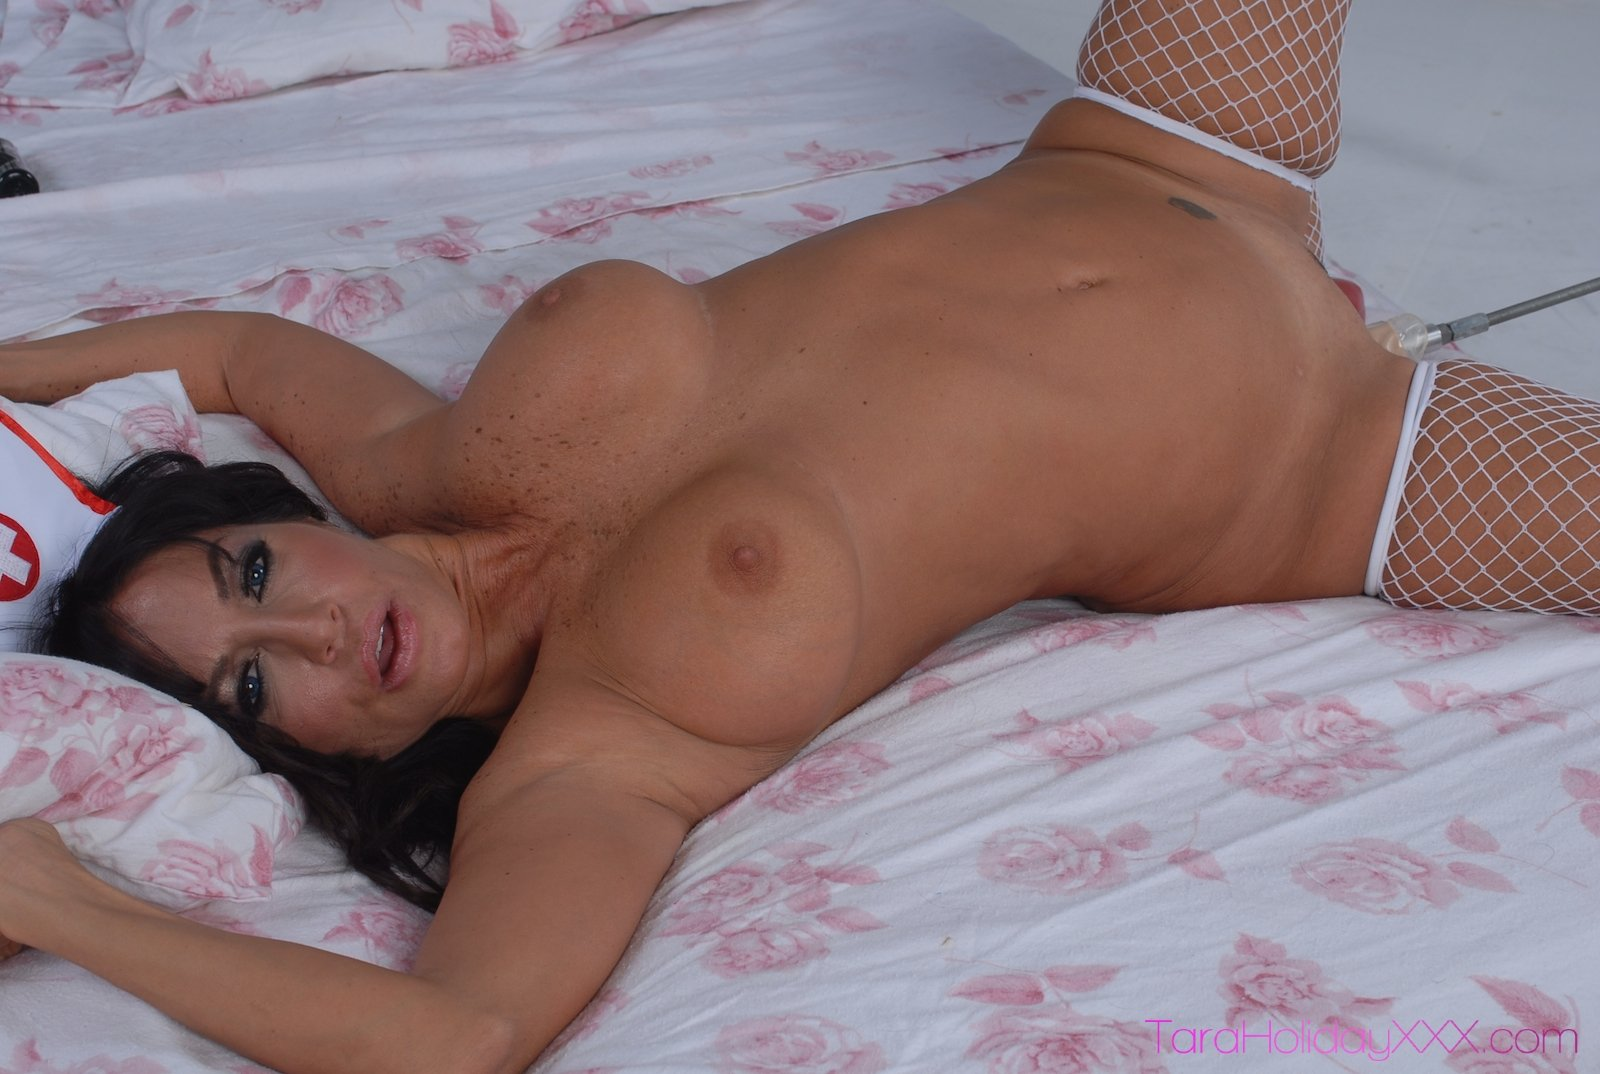 Adult cam free girl